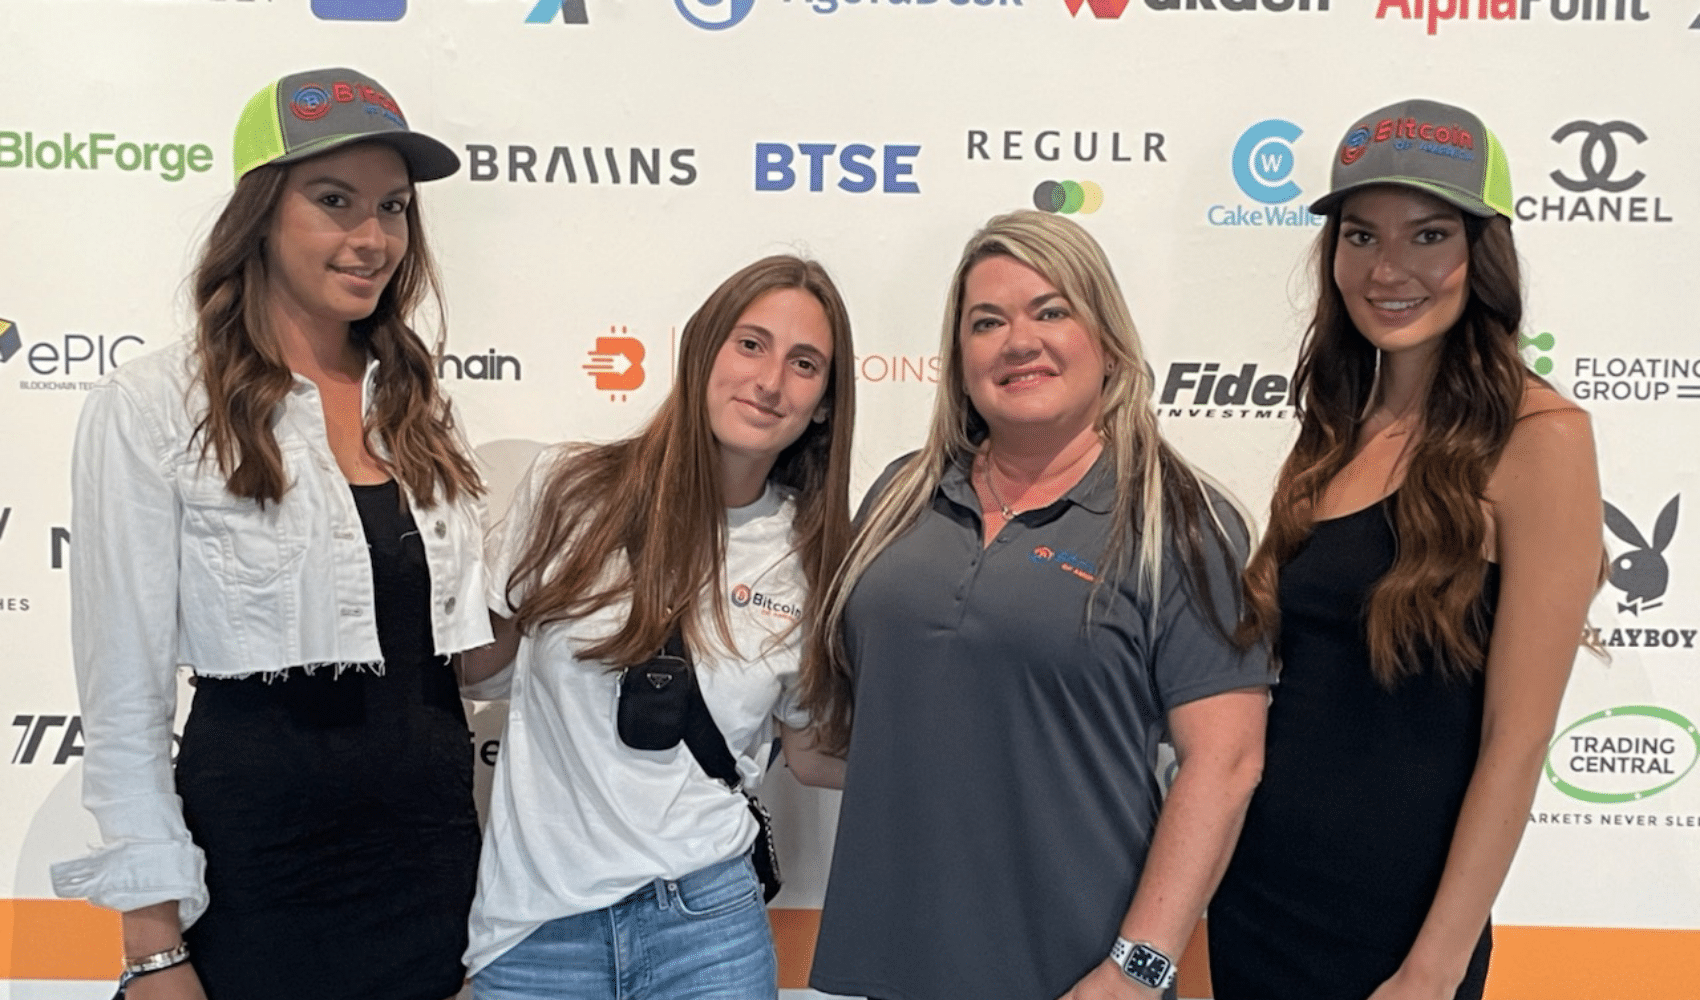 Bitcoin of America Promoting Women in the Cryptocurrency Industry